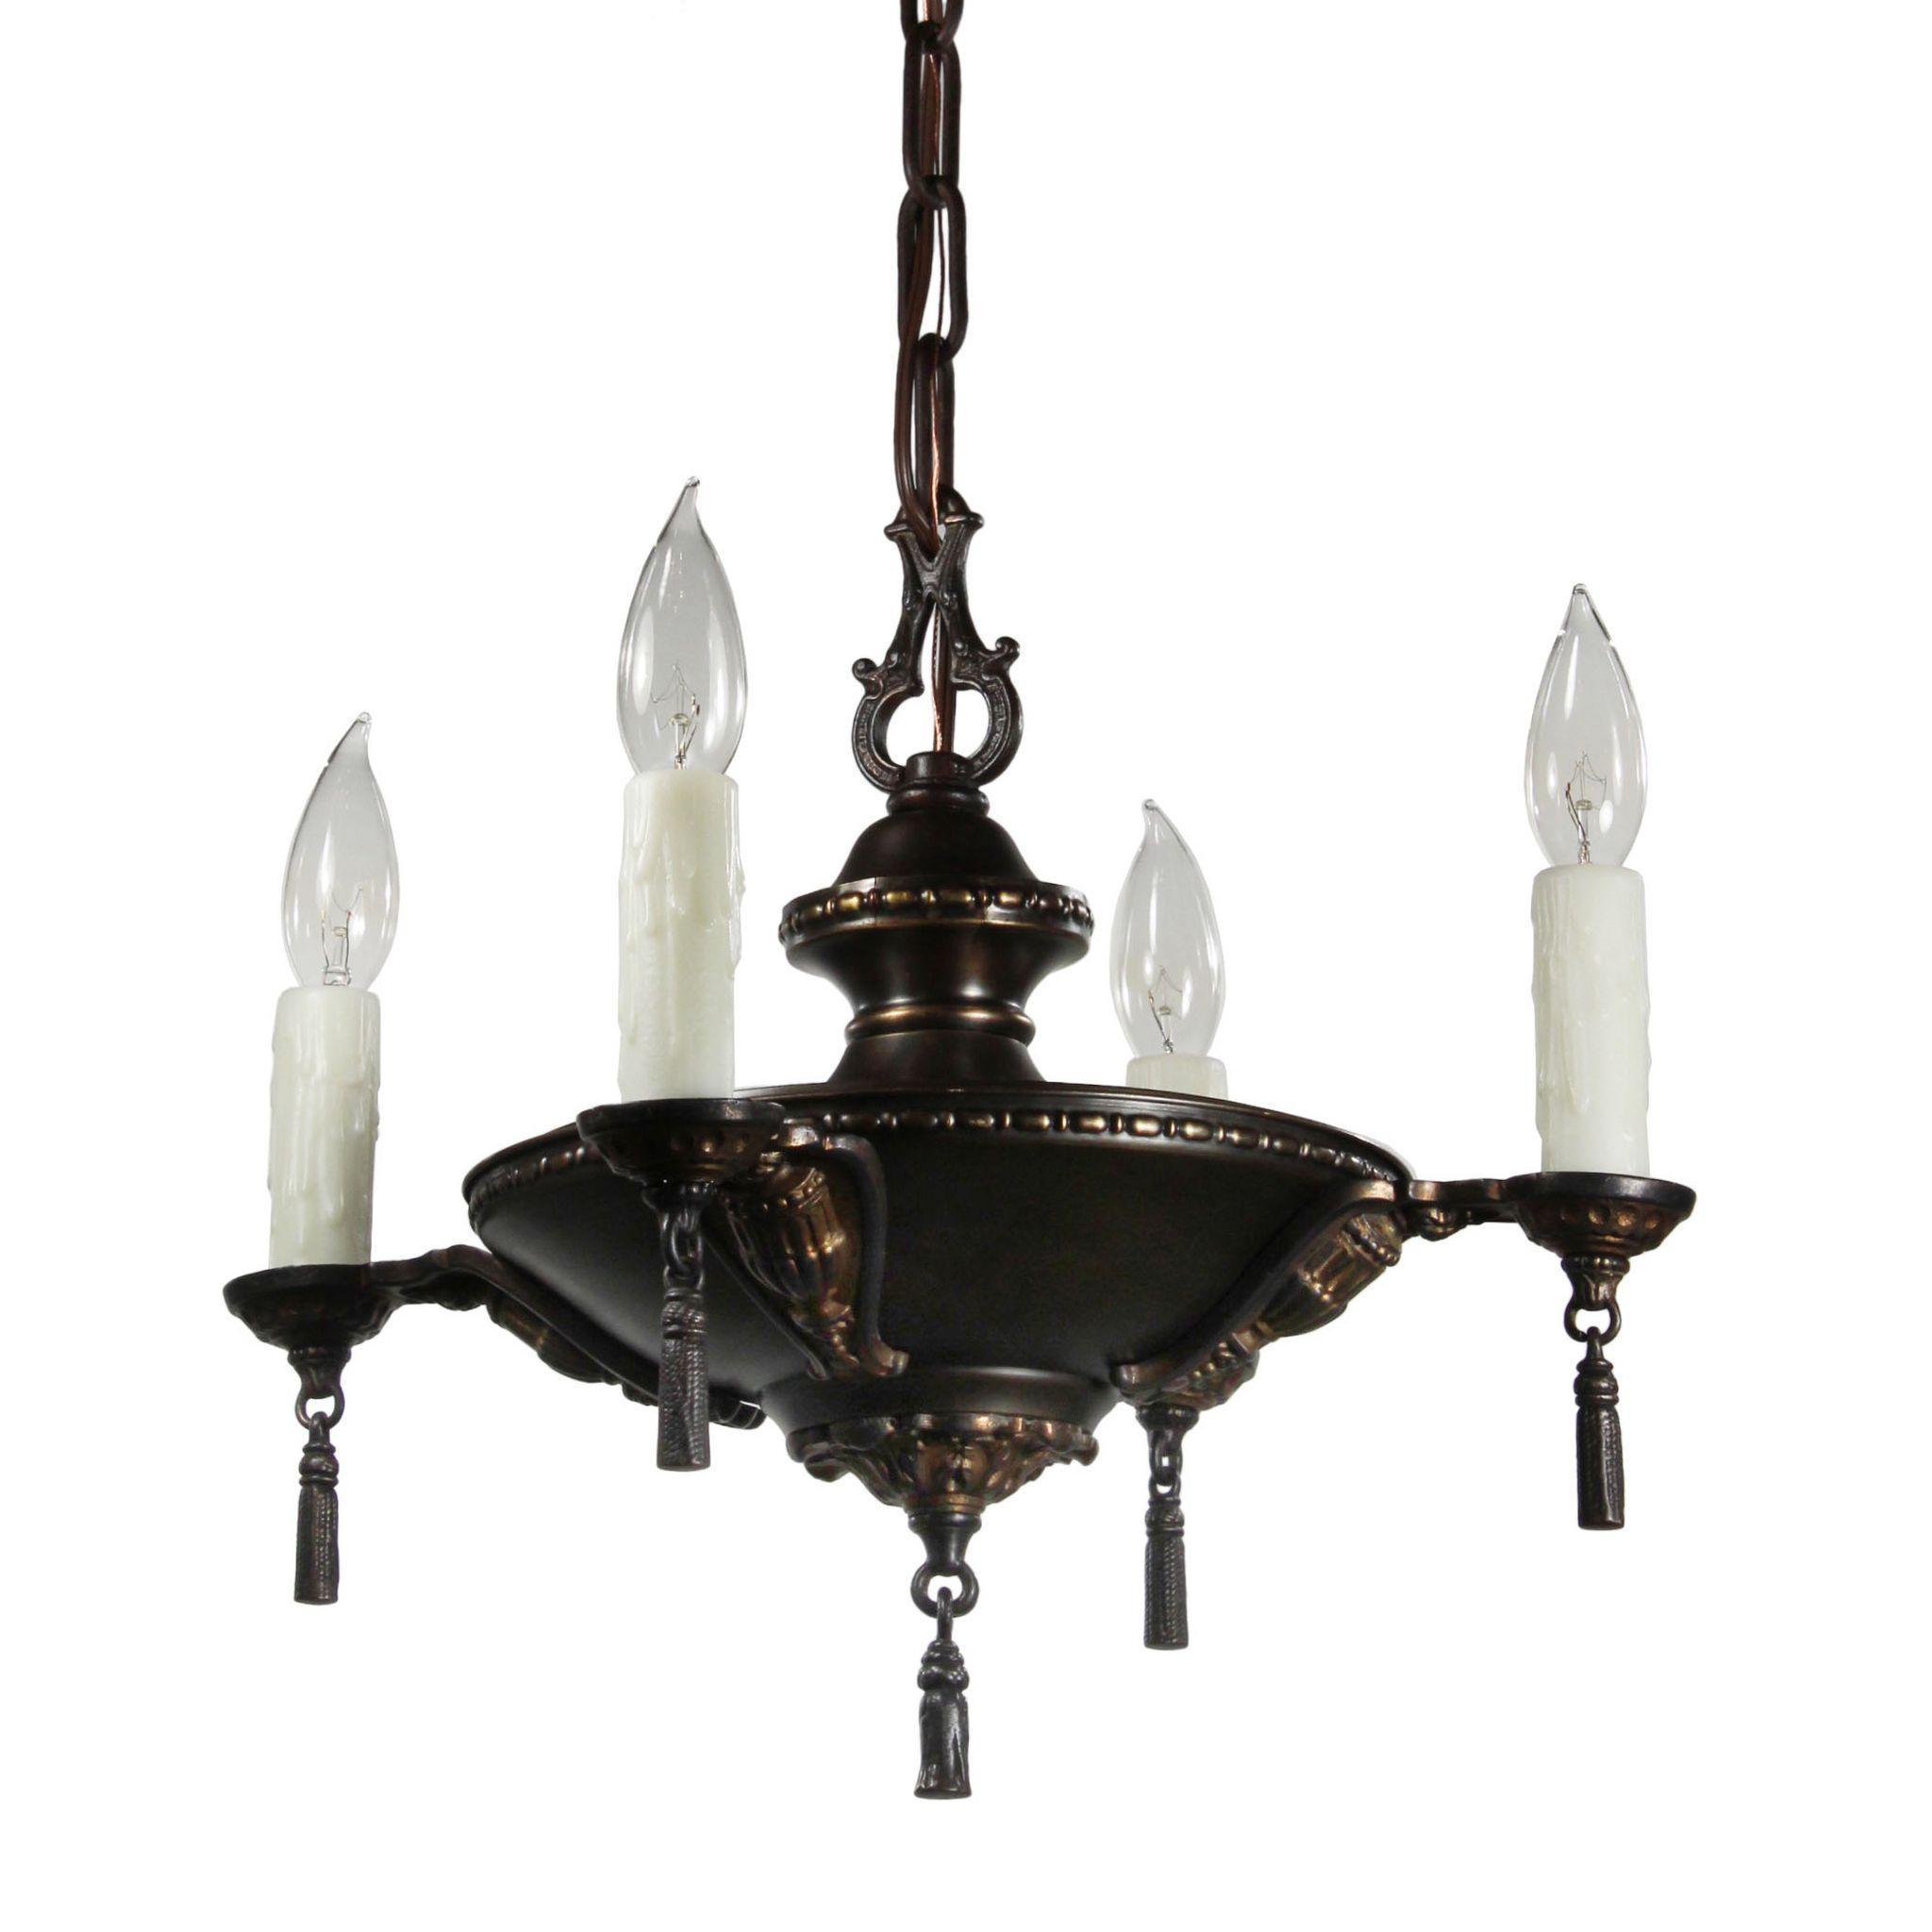 Antique Adam Style Chandelier with Tassels, Early 1900s